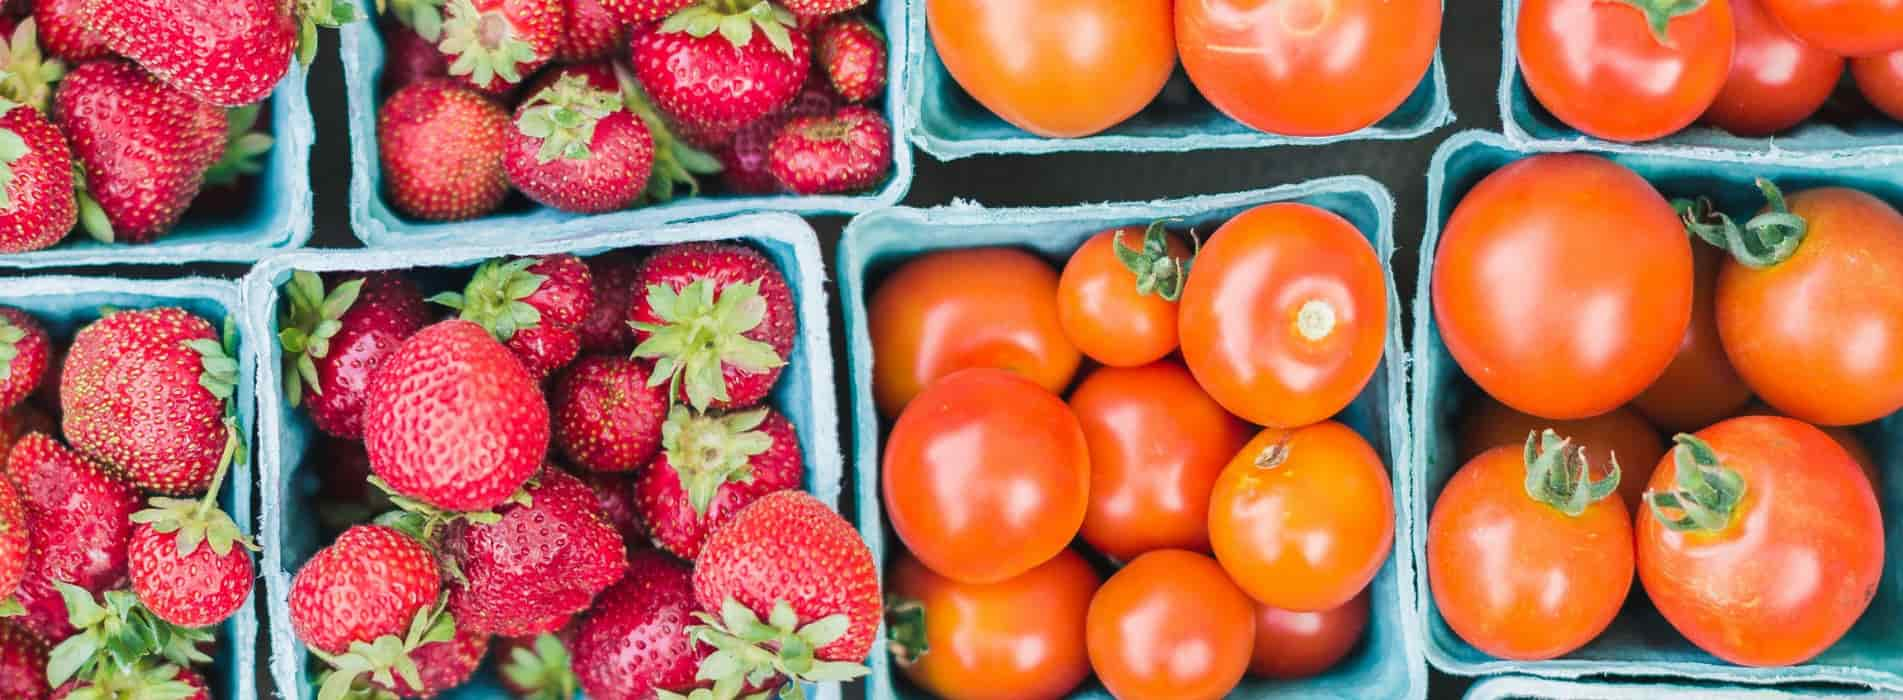 Easy Ways to Add Fruits and Veggies